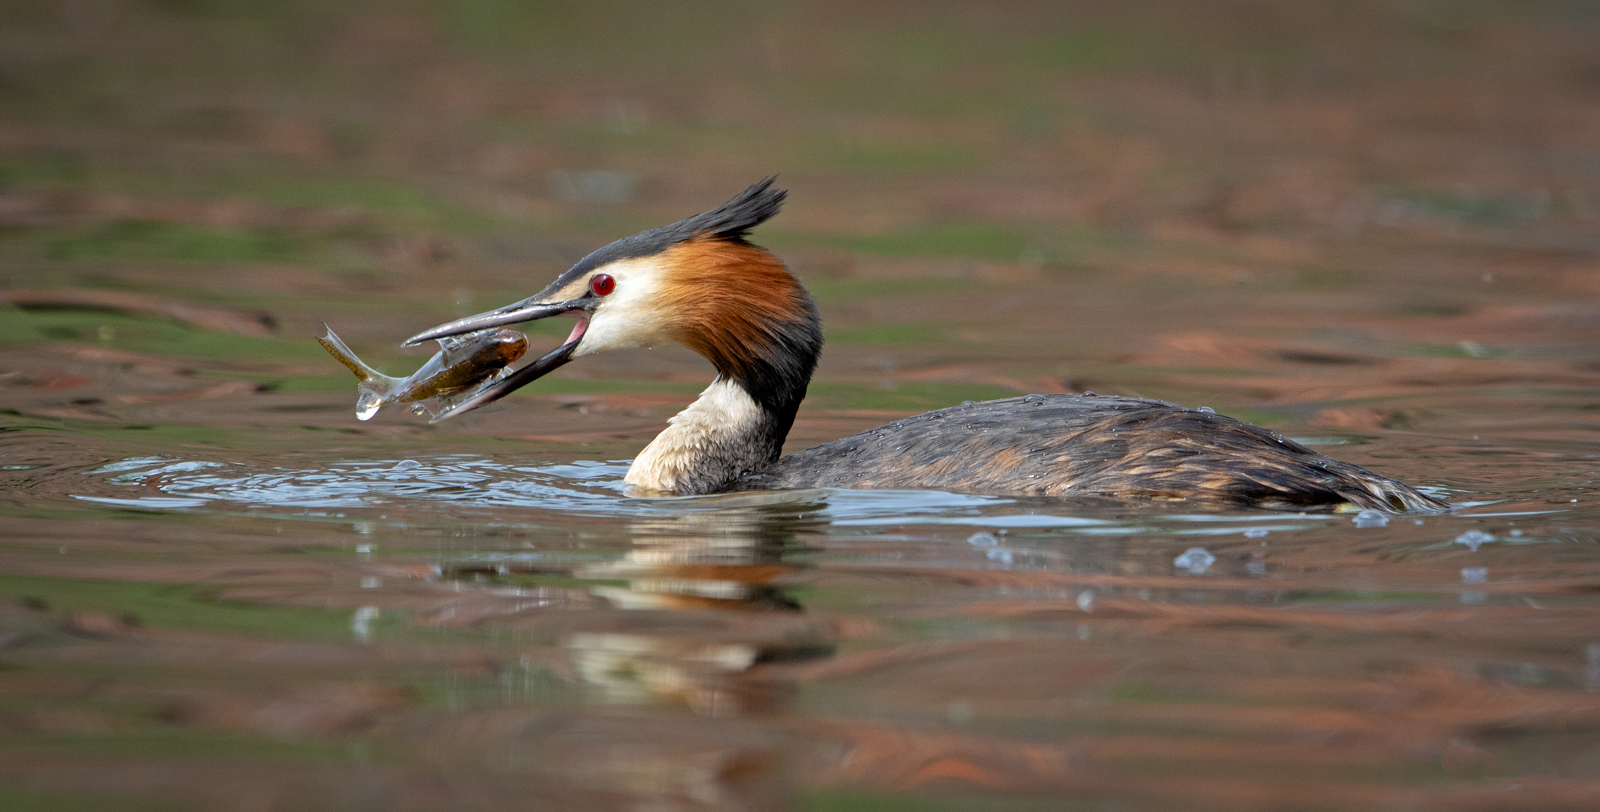 Great_Crested_Grebe_Turning_Fish.jpg